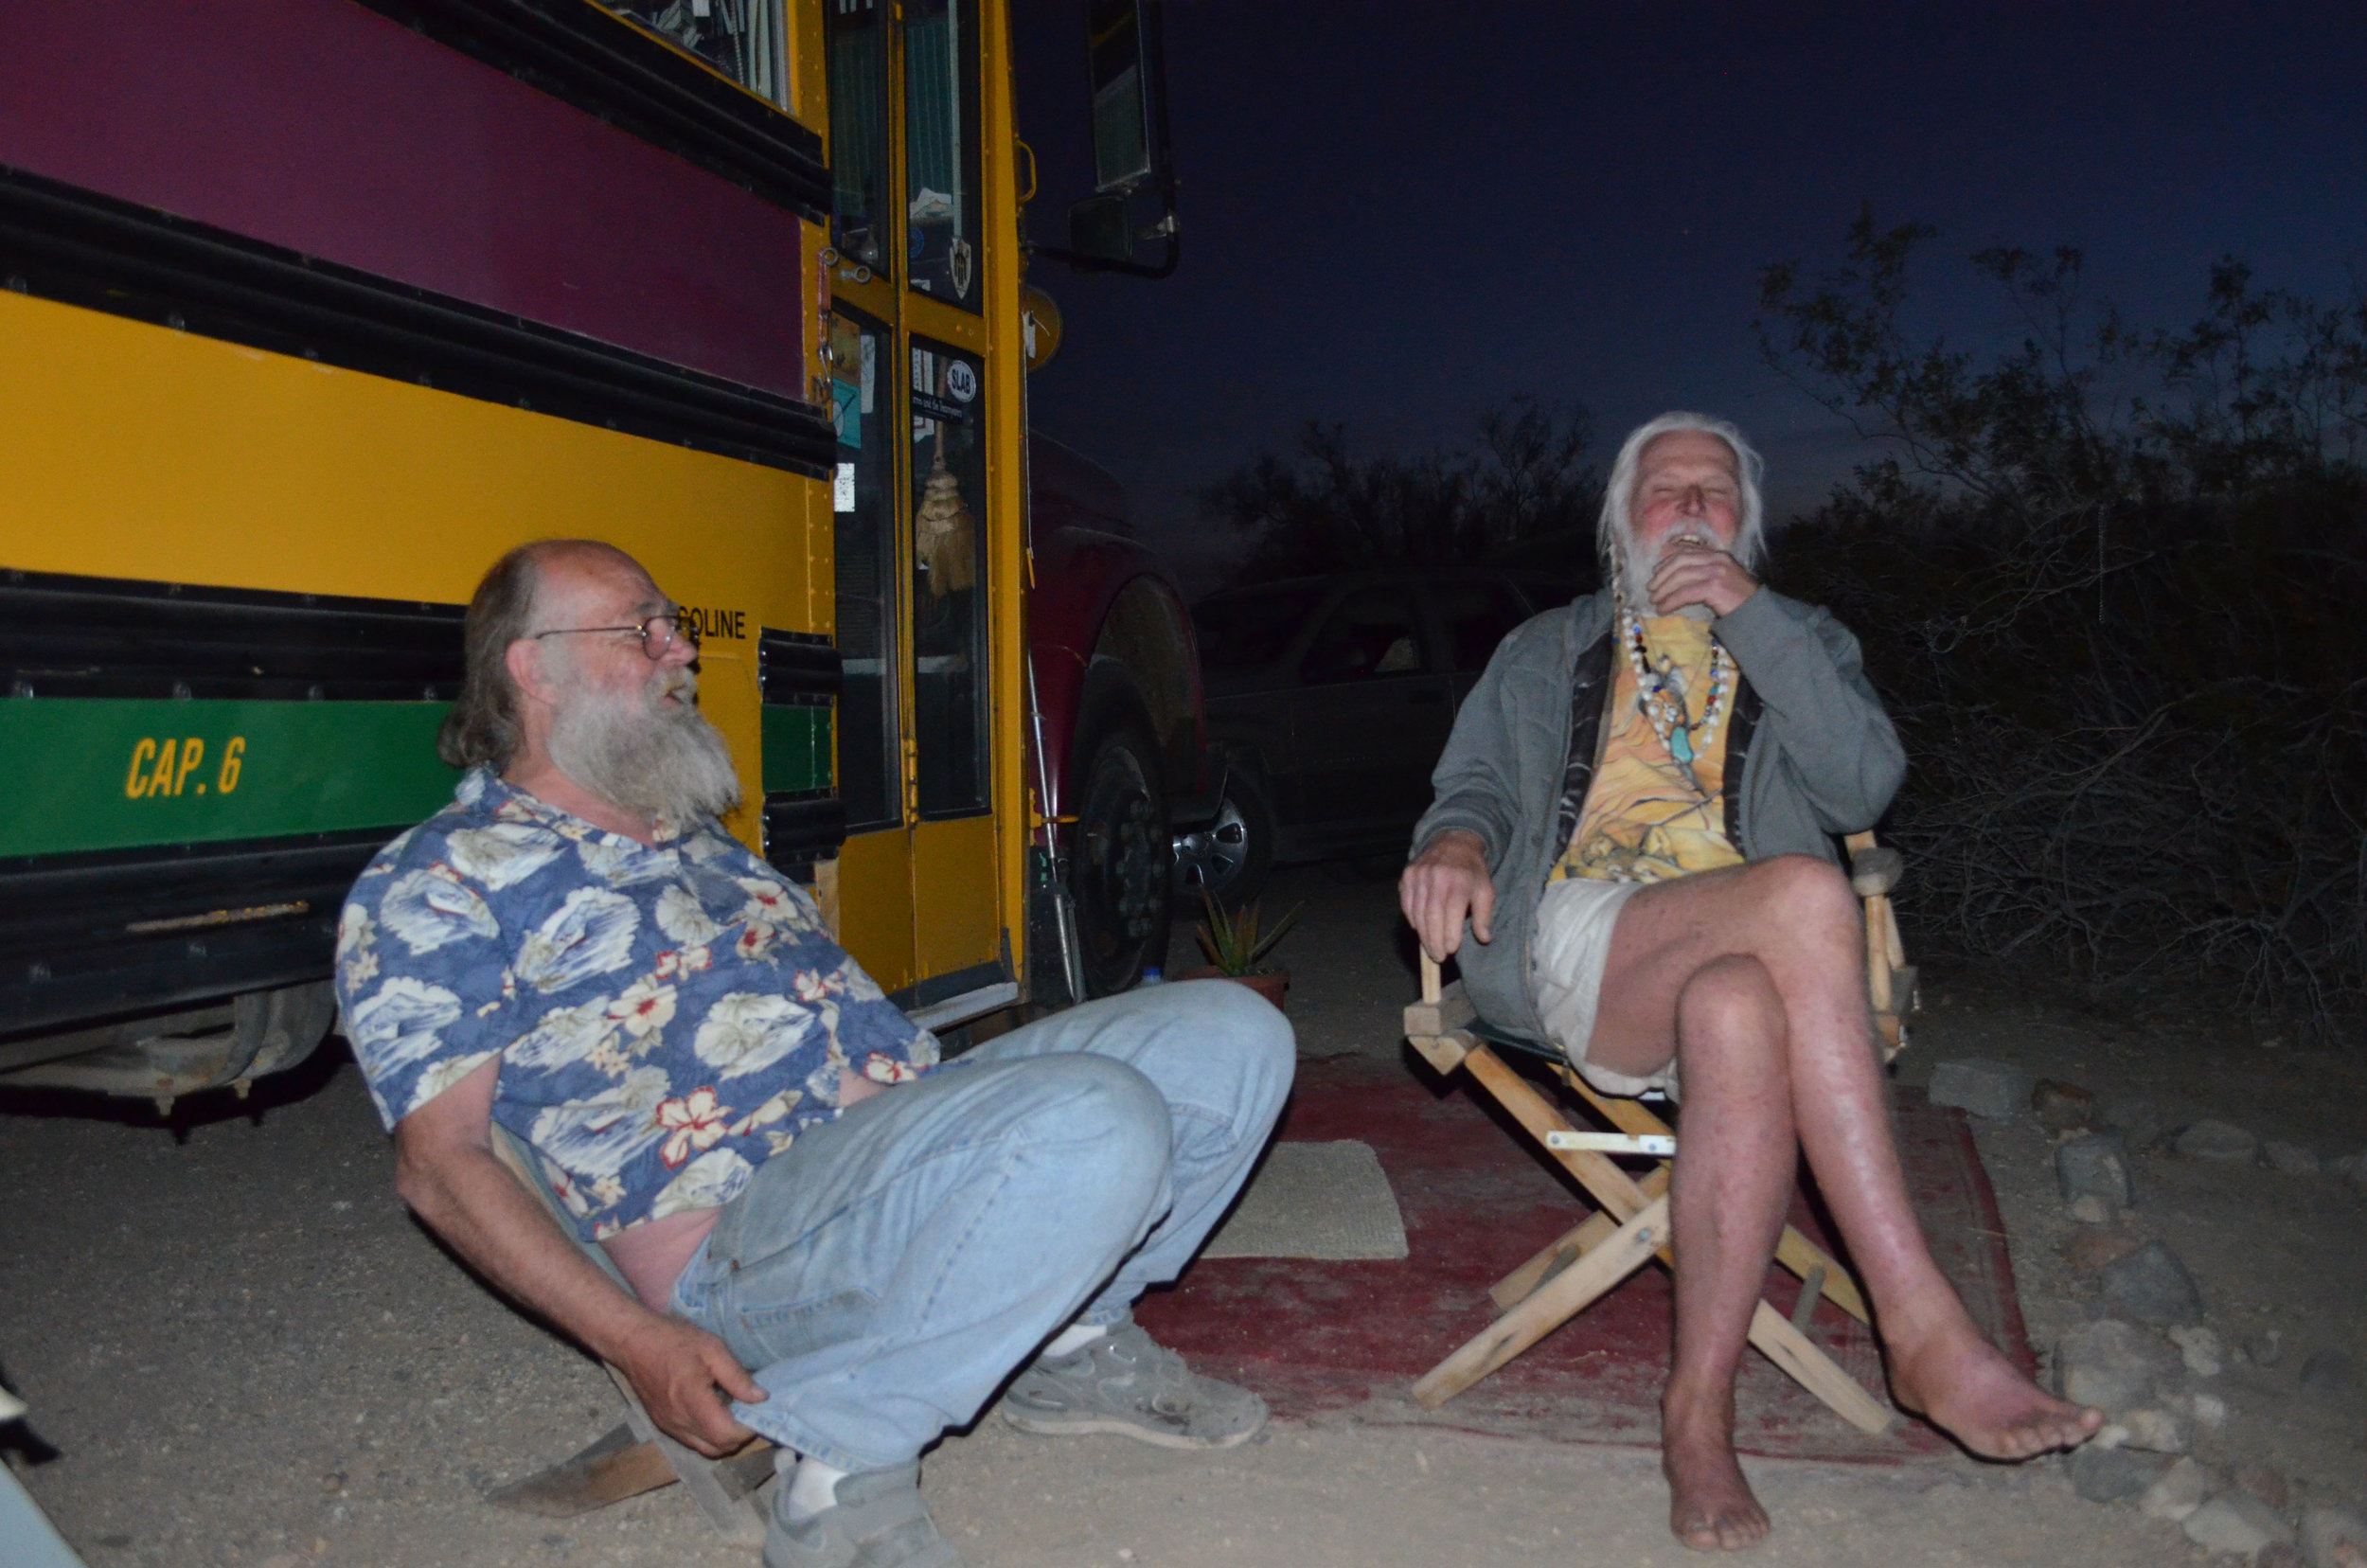 James Hoyle and Peter Lonnies hang out outside Lonnies' converted school bus. Both oppose efforts to change Slab City. (Imperial Valley Press/Antoine Abou-Diwan)